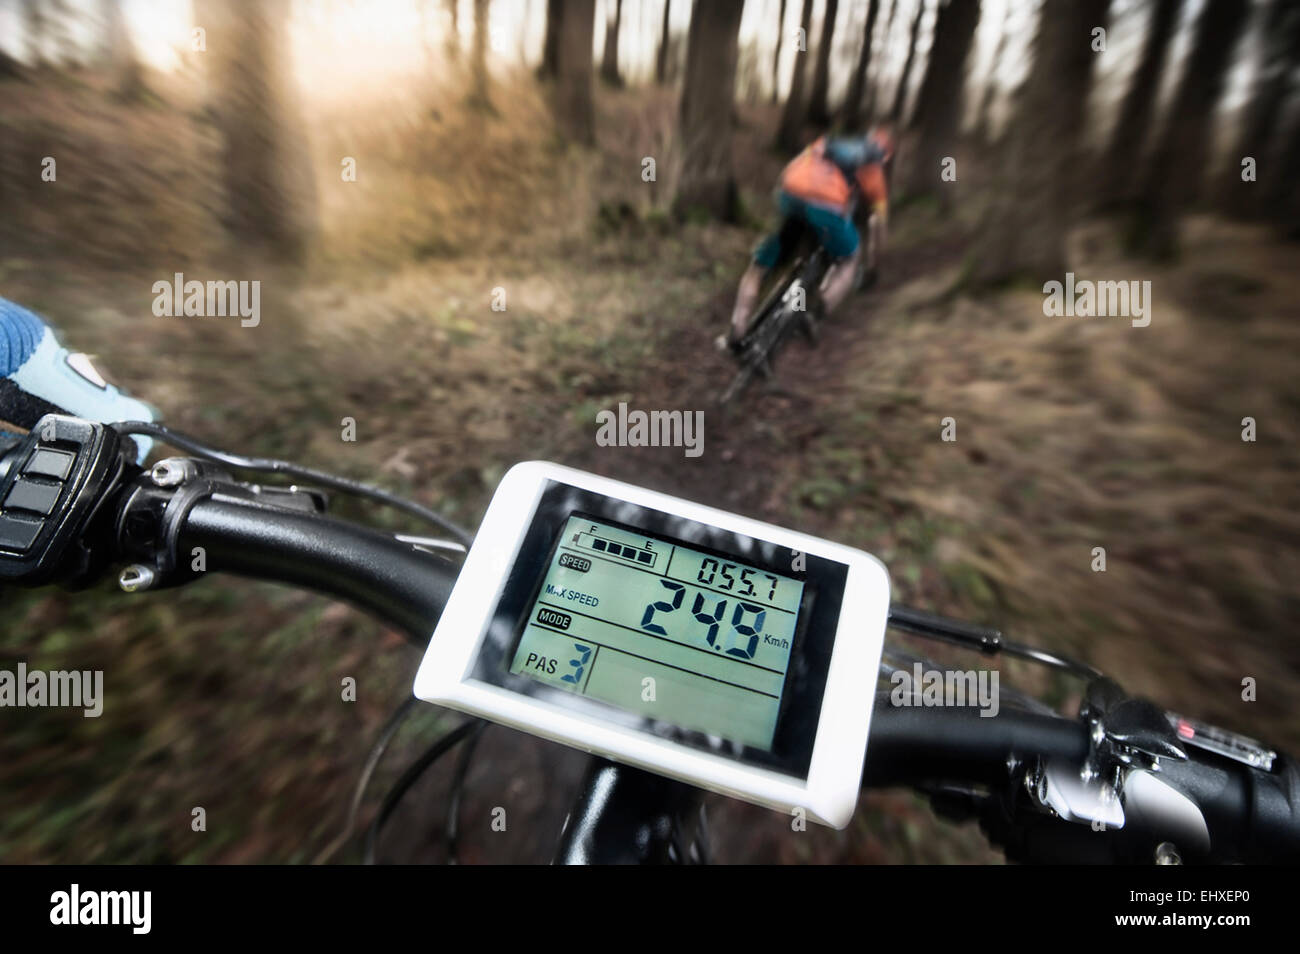 Driving view of mountain biking down hill descending fast on bicycle, Bavaria, Germany - Stock Image